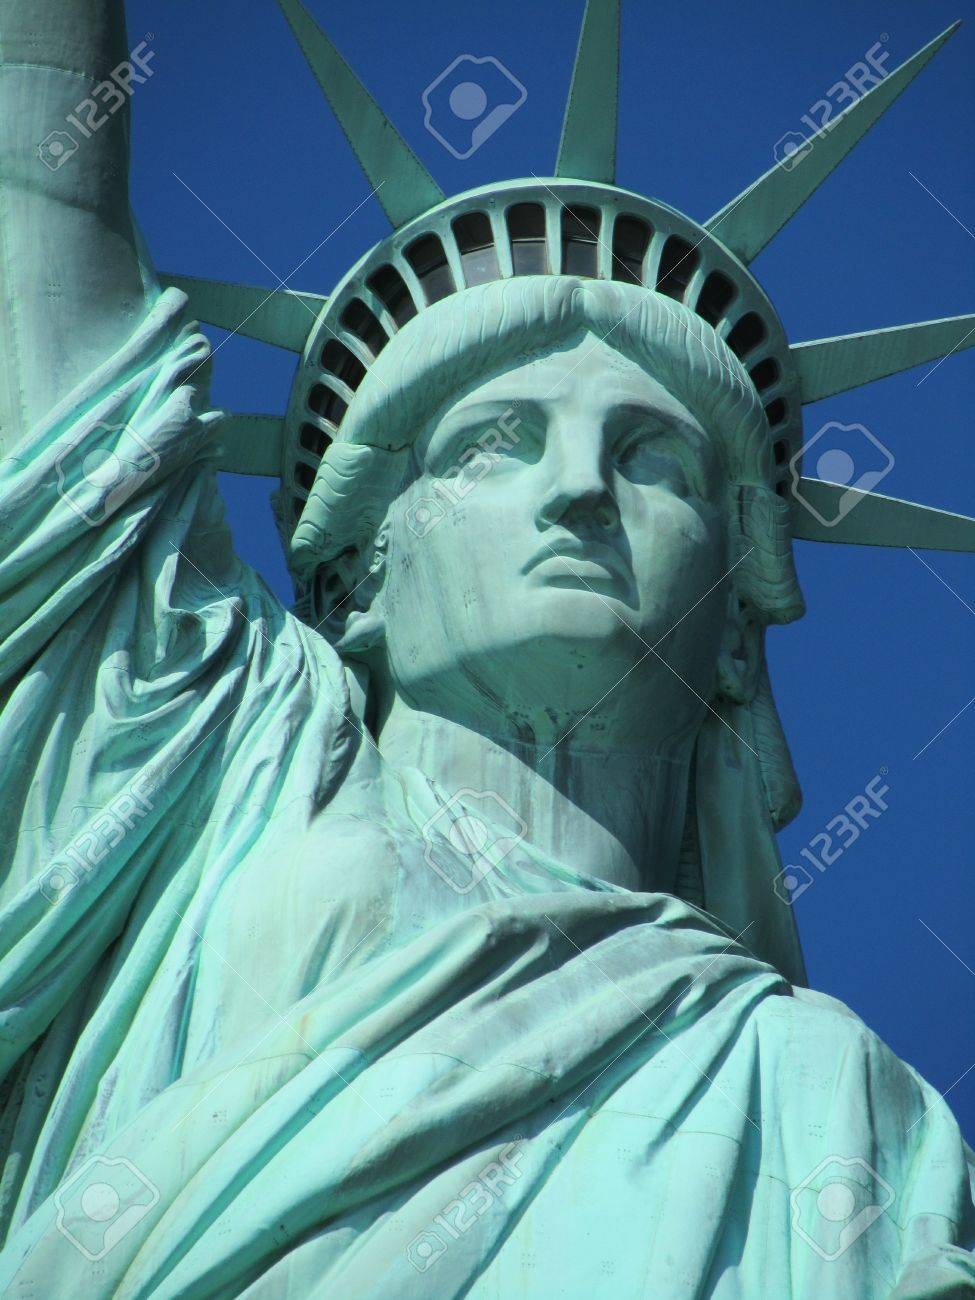 79f62b4f05227 Statue Of Liberty Face Stock Photo, Picture And Royalty Free Image ...